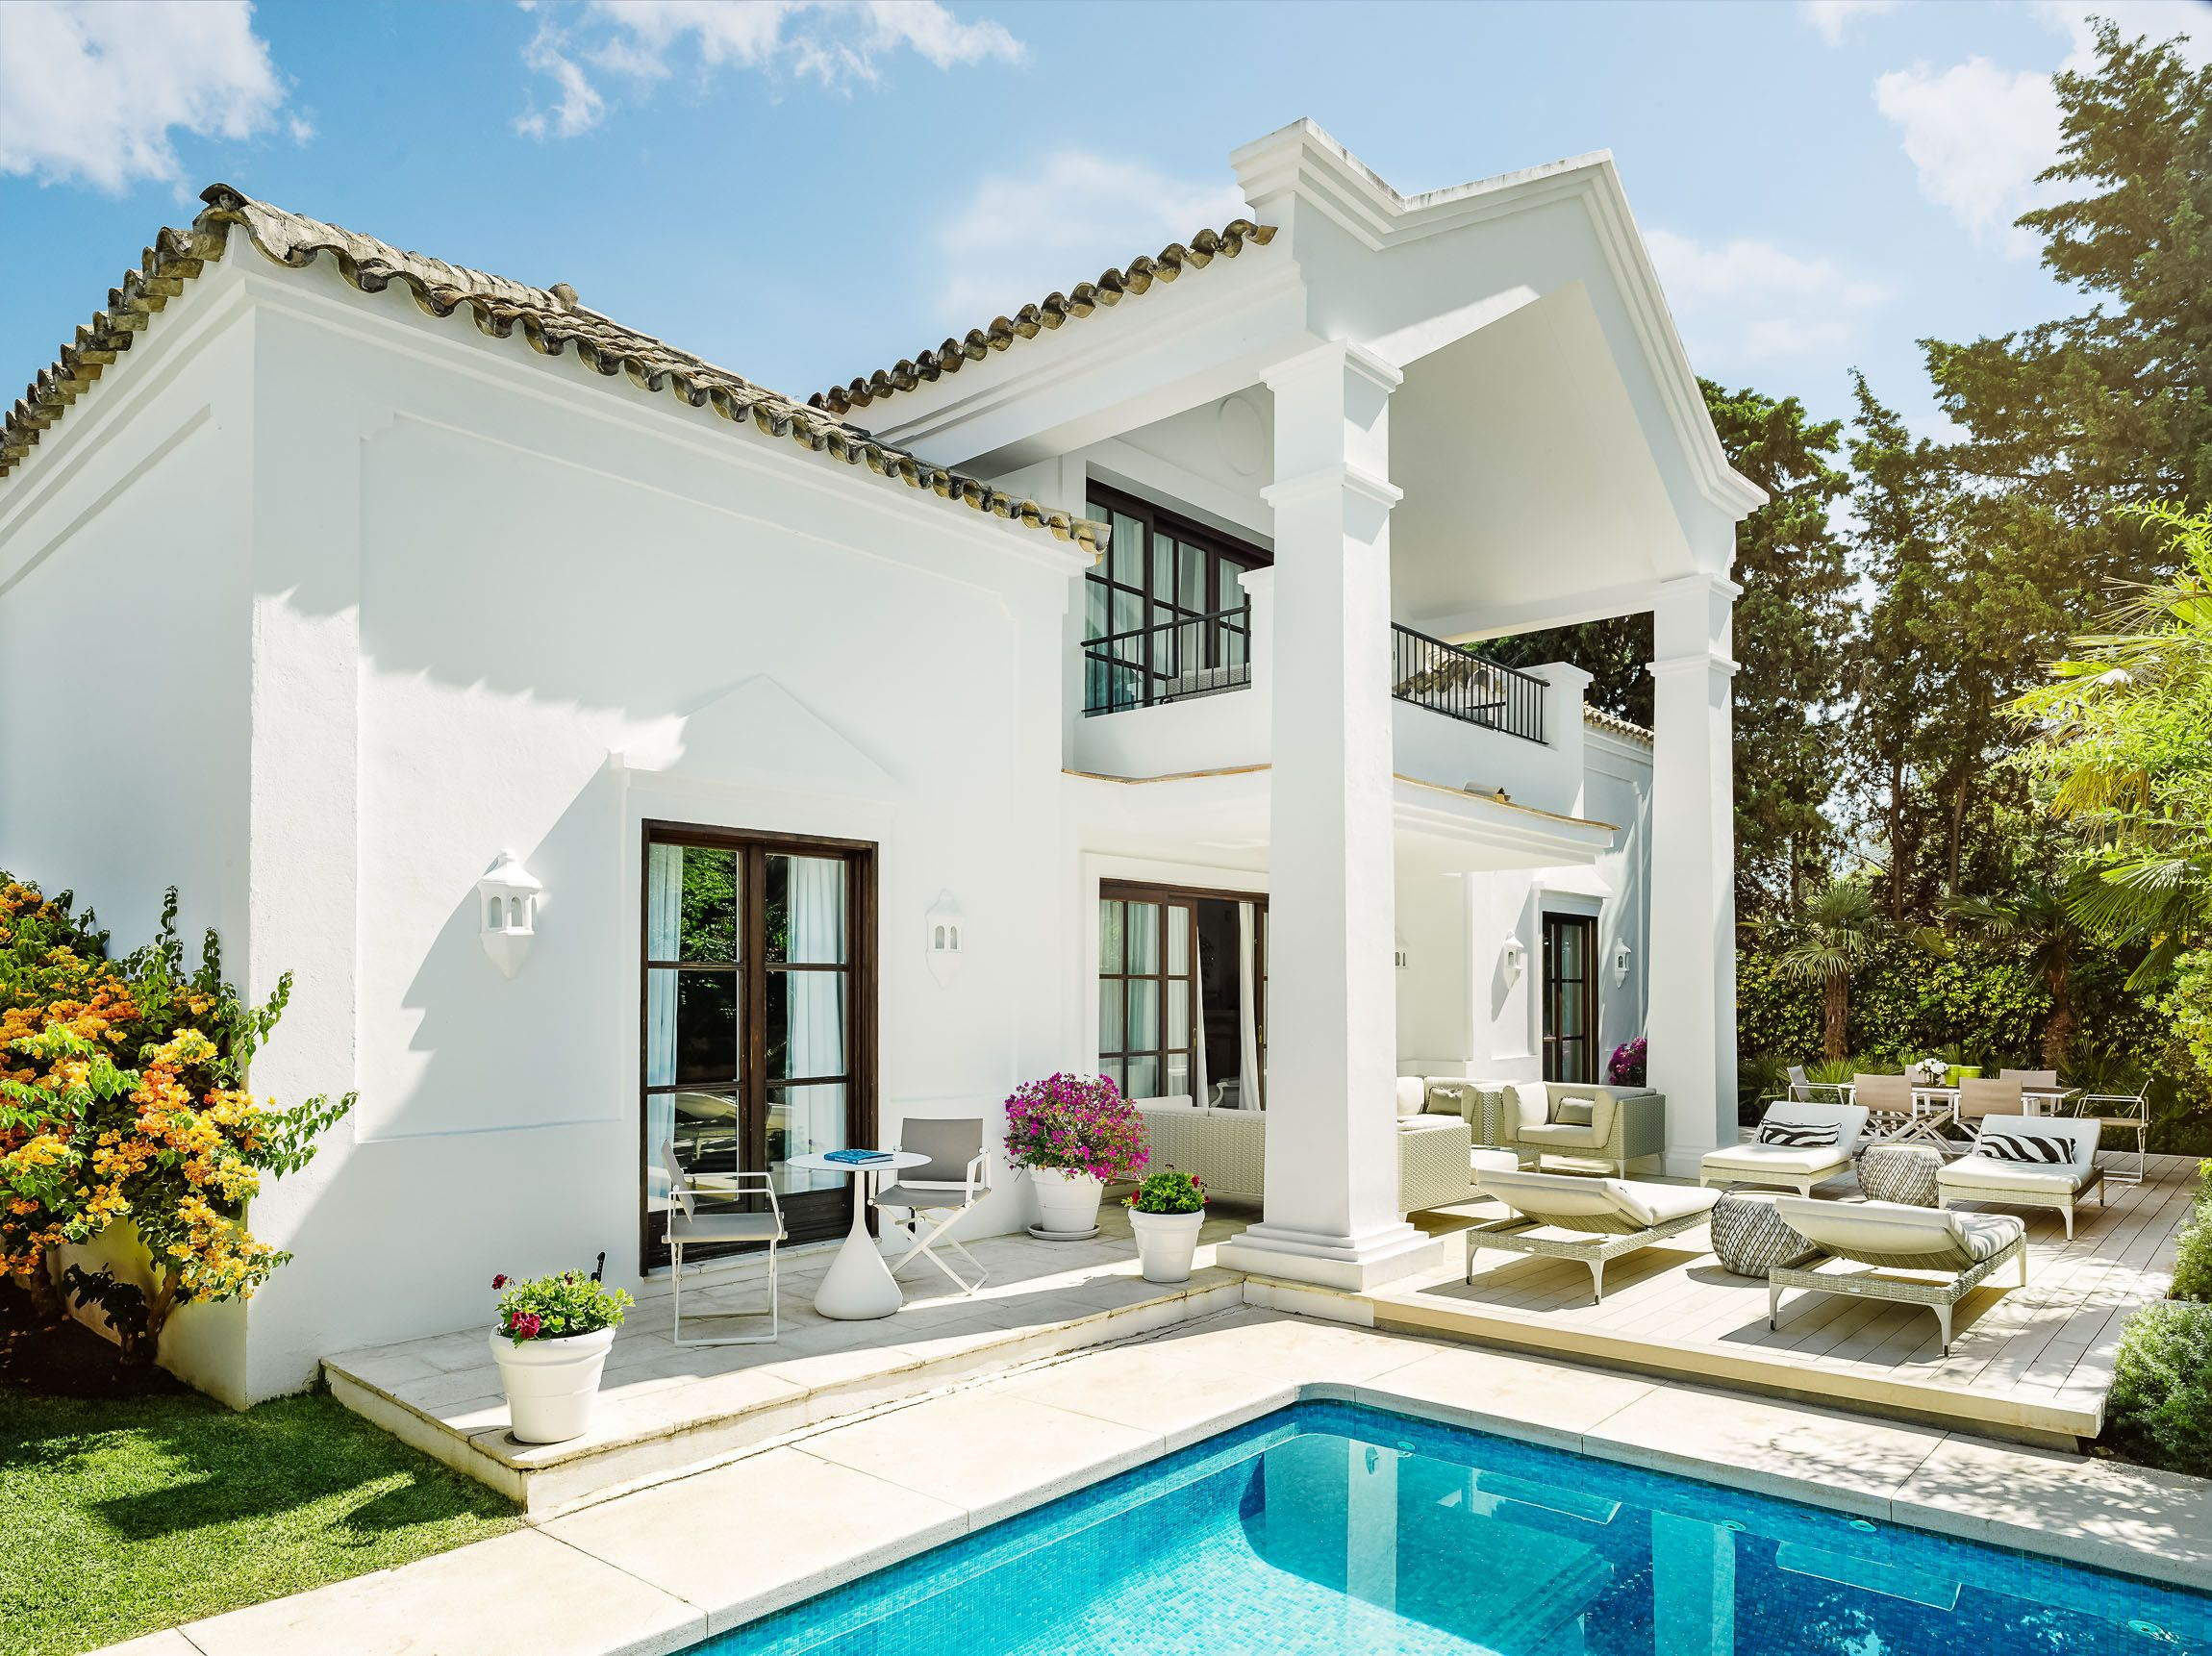 Check Out This Amazing Luxury Retreats Property In Costa Del Sol With 3 Bedrooms And A Pool Brow Luxury Homes Exterior Luxury Houses Mansions Marbella Villas